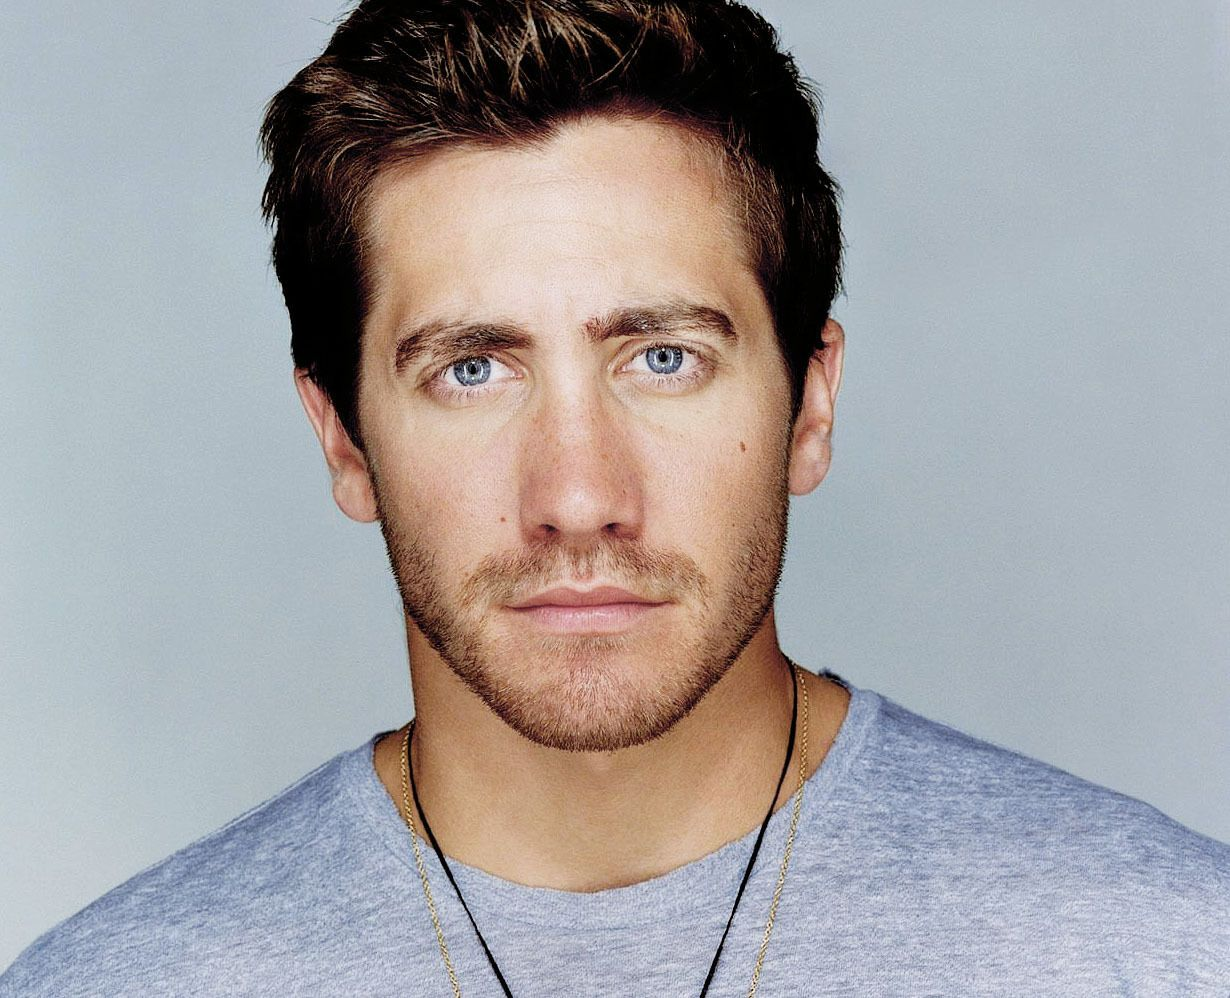 What's not to absolutely adore about Jake Gyllenhaal. He's